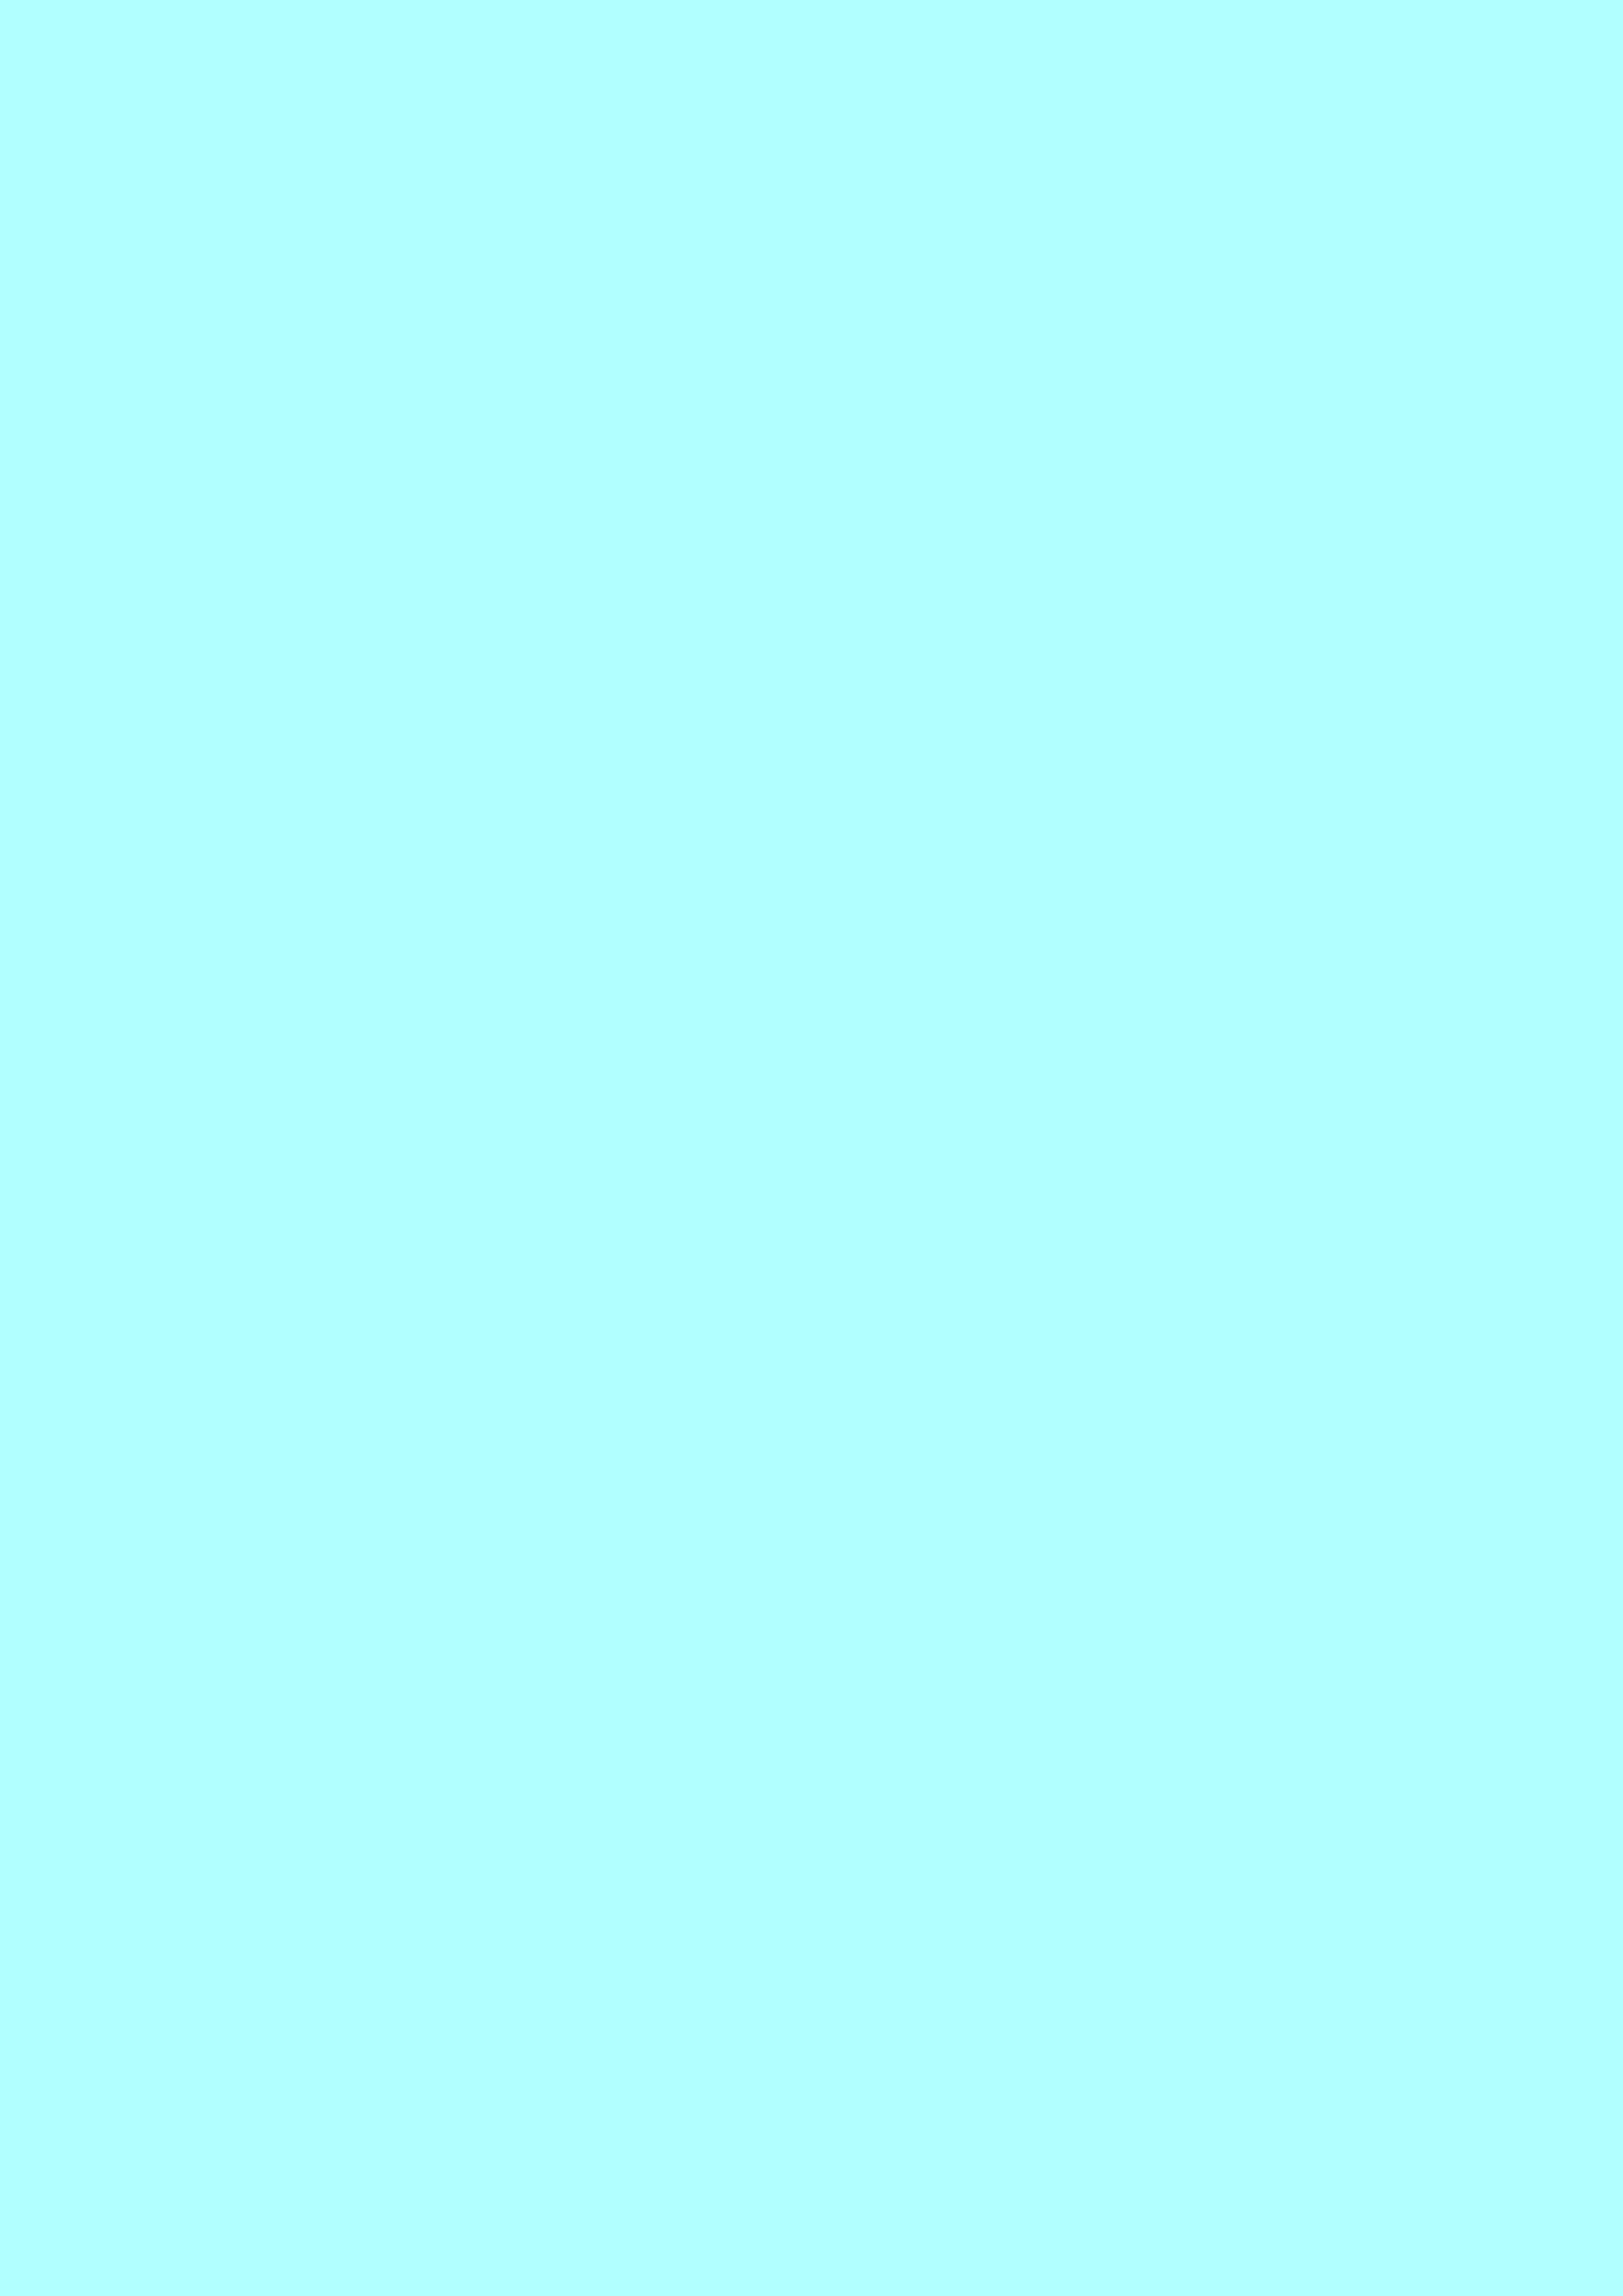 2480x3508 Italian Sky Blue Solid Color Background